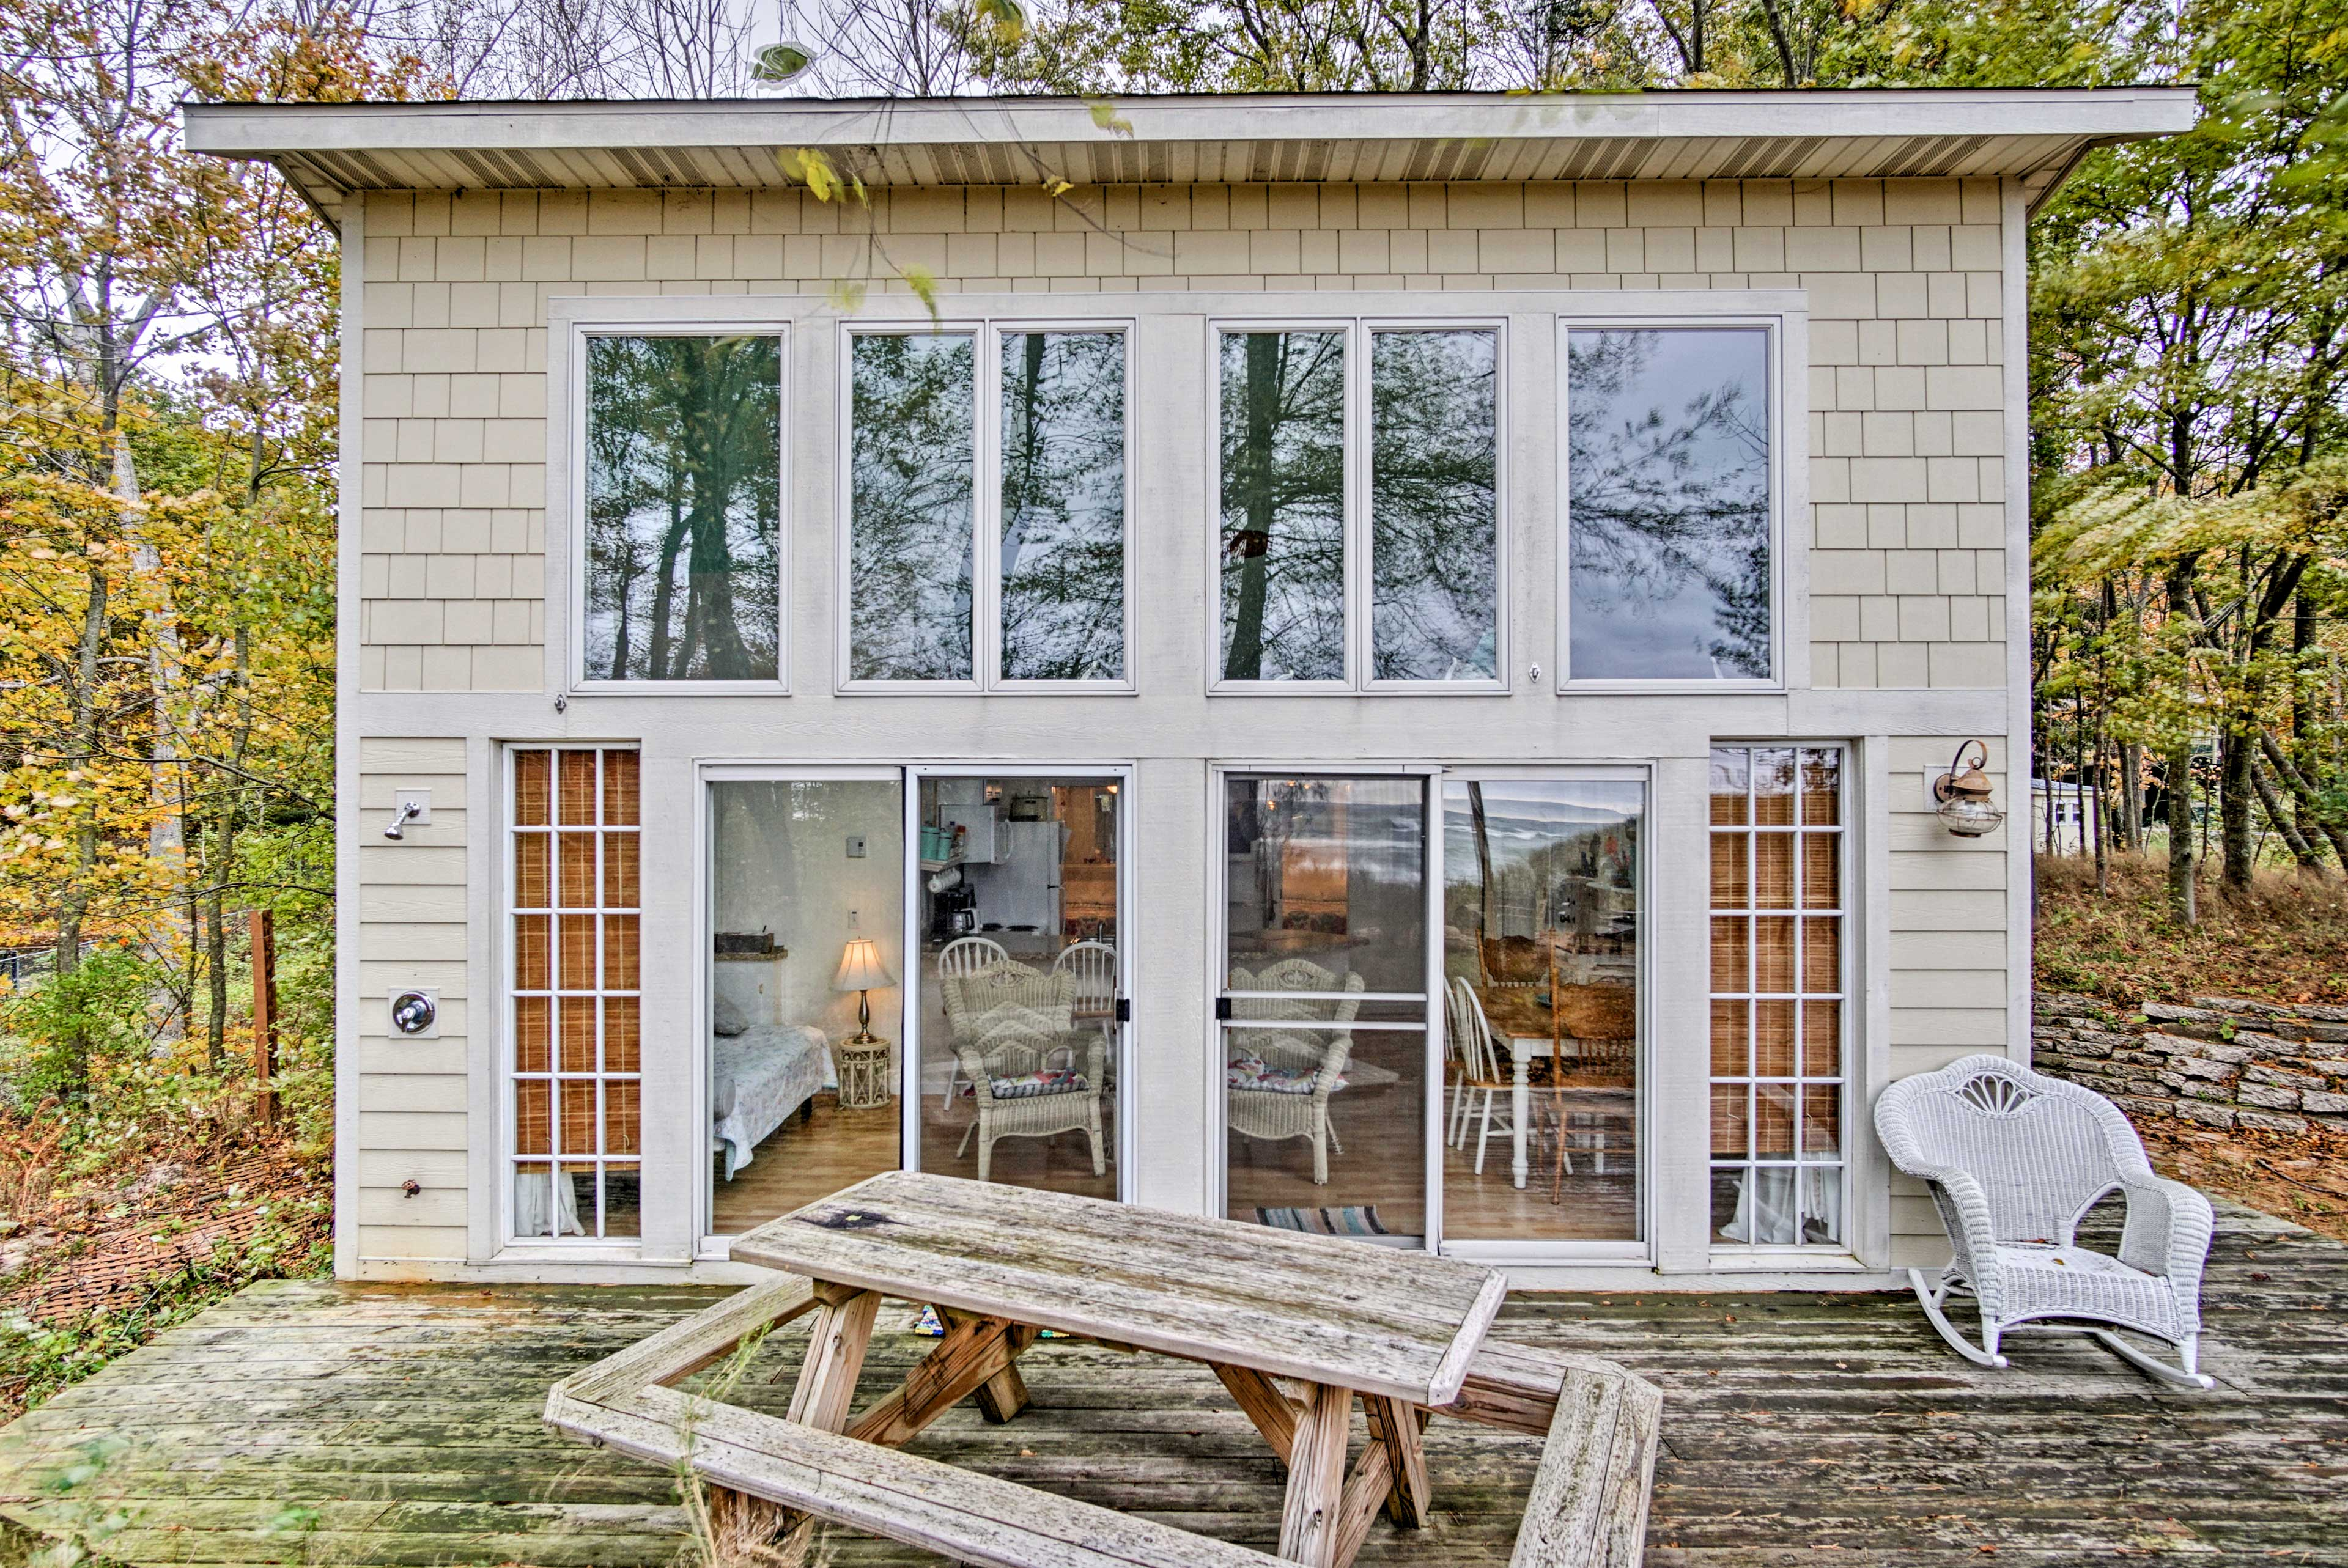 Lakefront bliss awaits you at this 2-bed, 1-bath vacation rental cottage in North Muskegon!